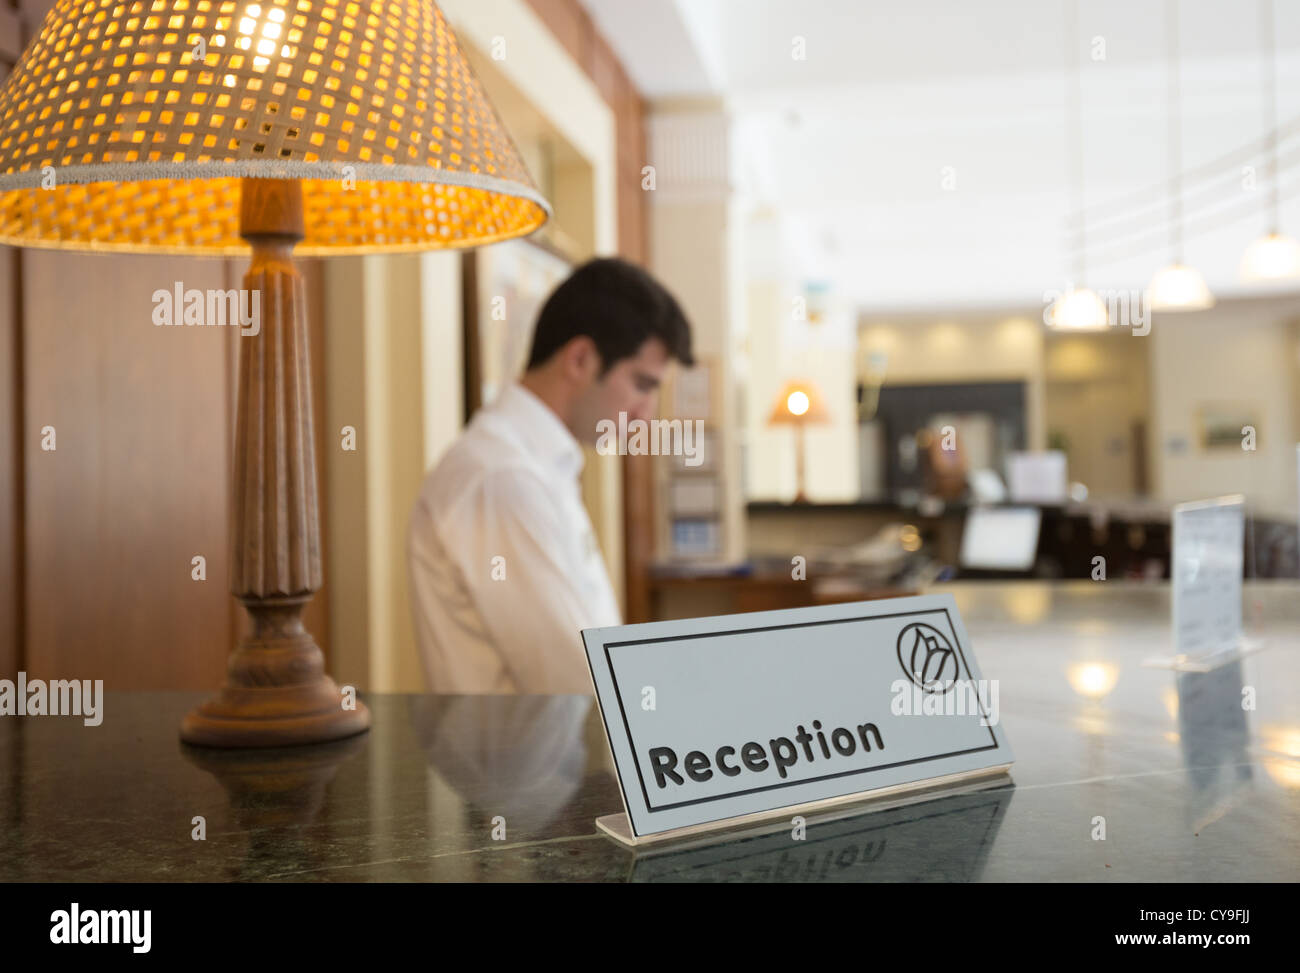 Hotel reception desk with a table and receptionists on a background - Stock Image